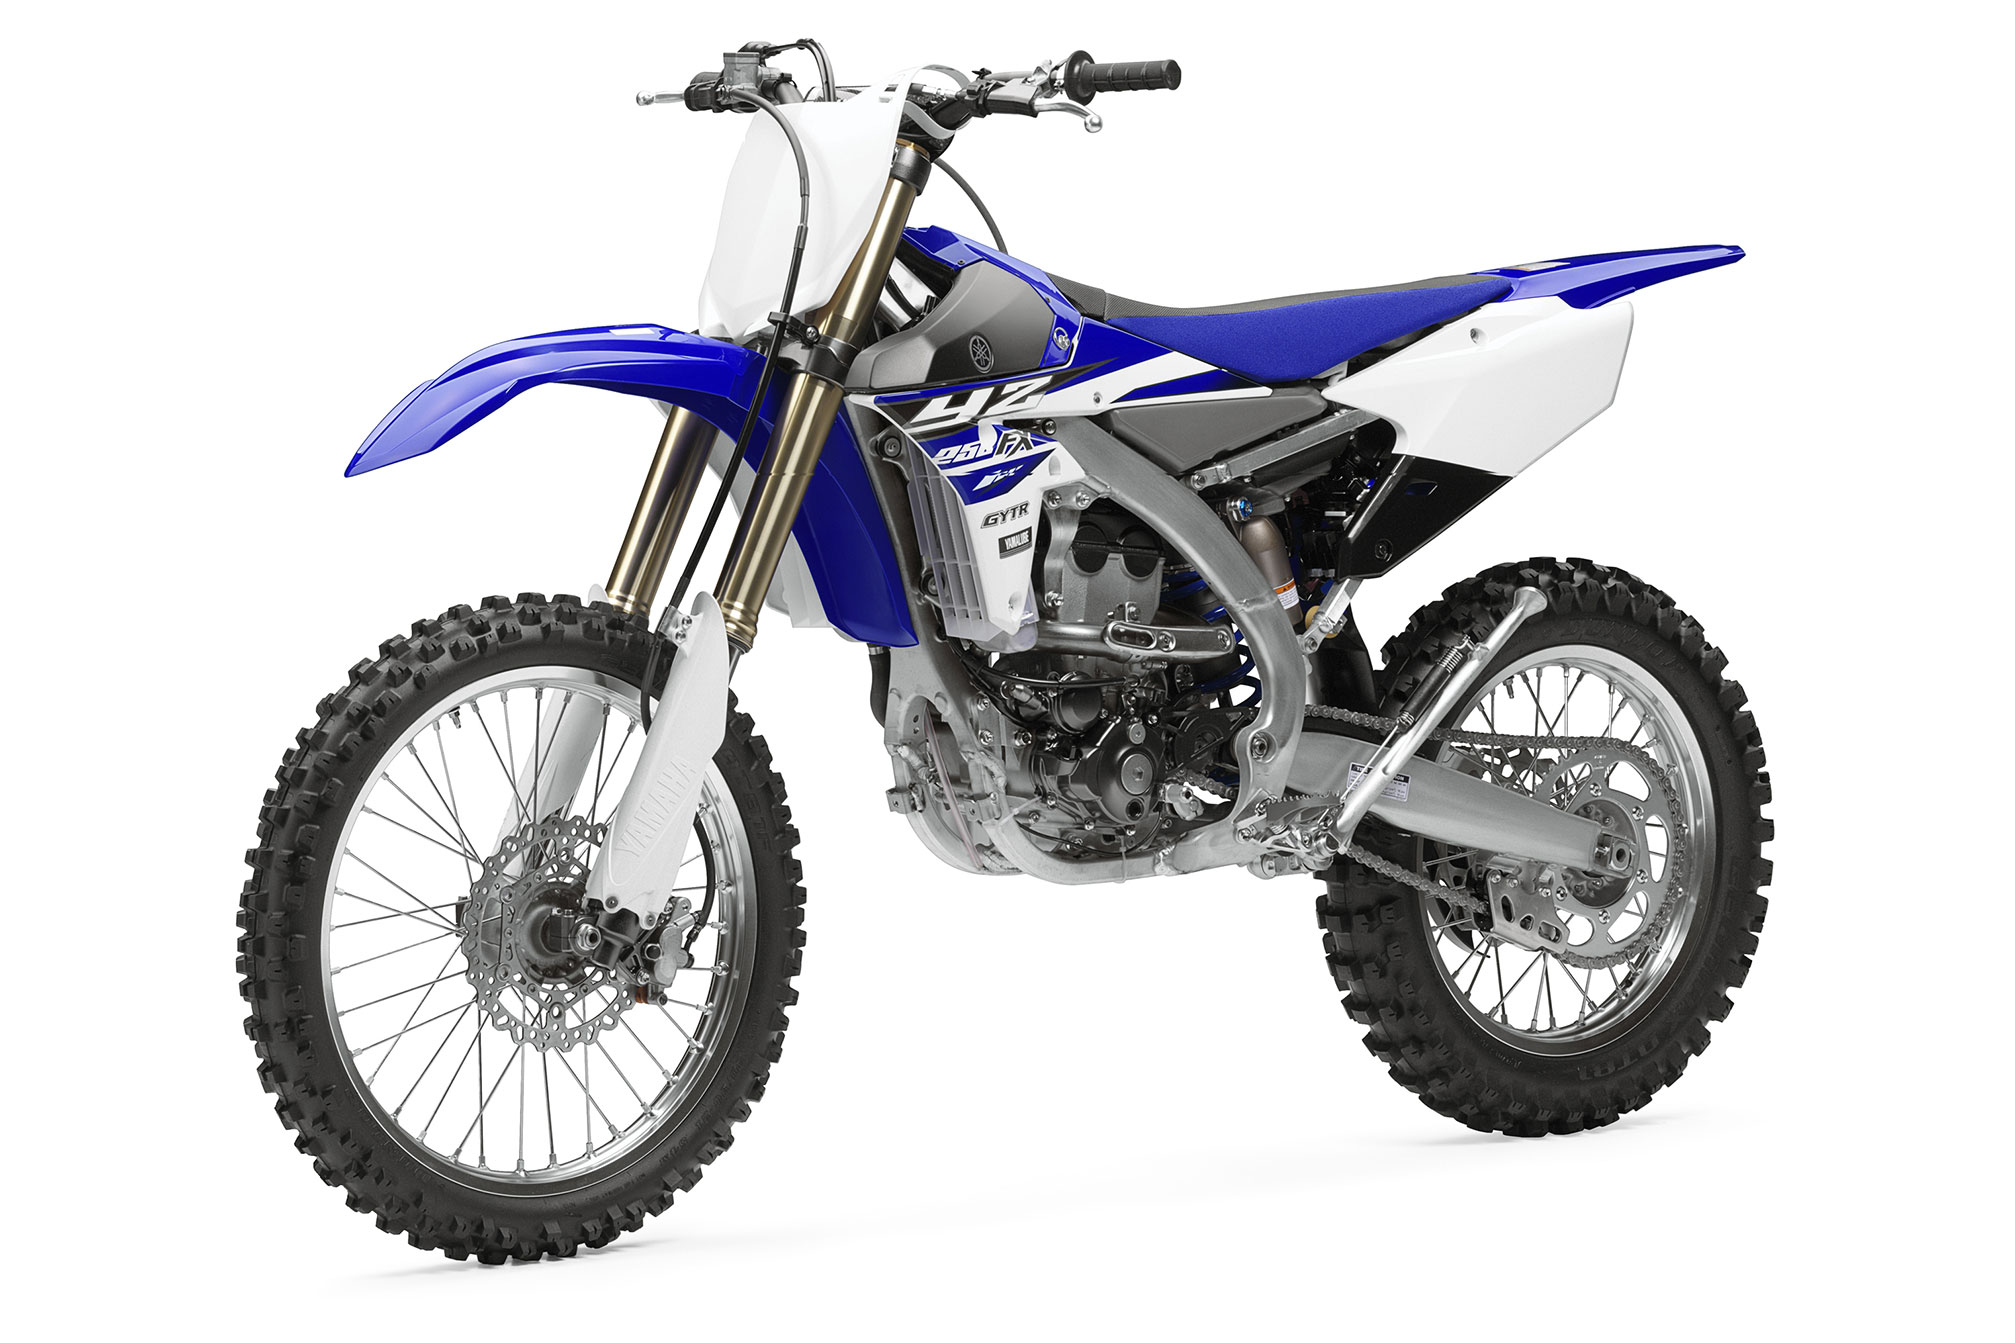 2015 Yamaha WR 250F & YZ 250FX Released - Dirt Action